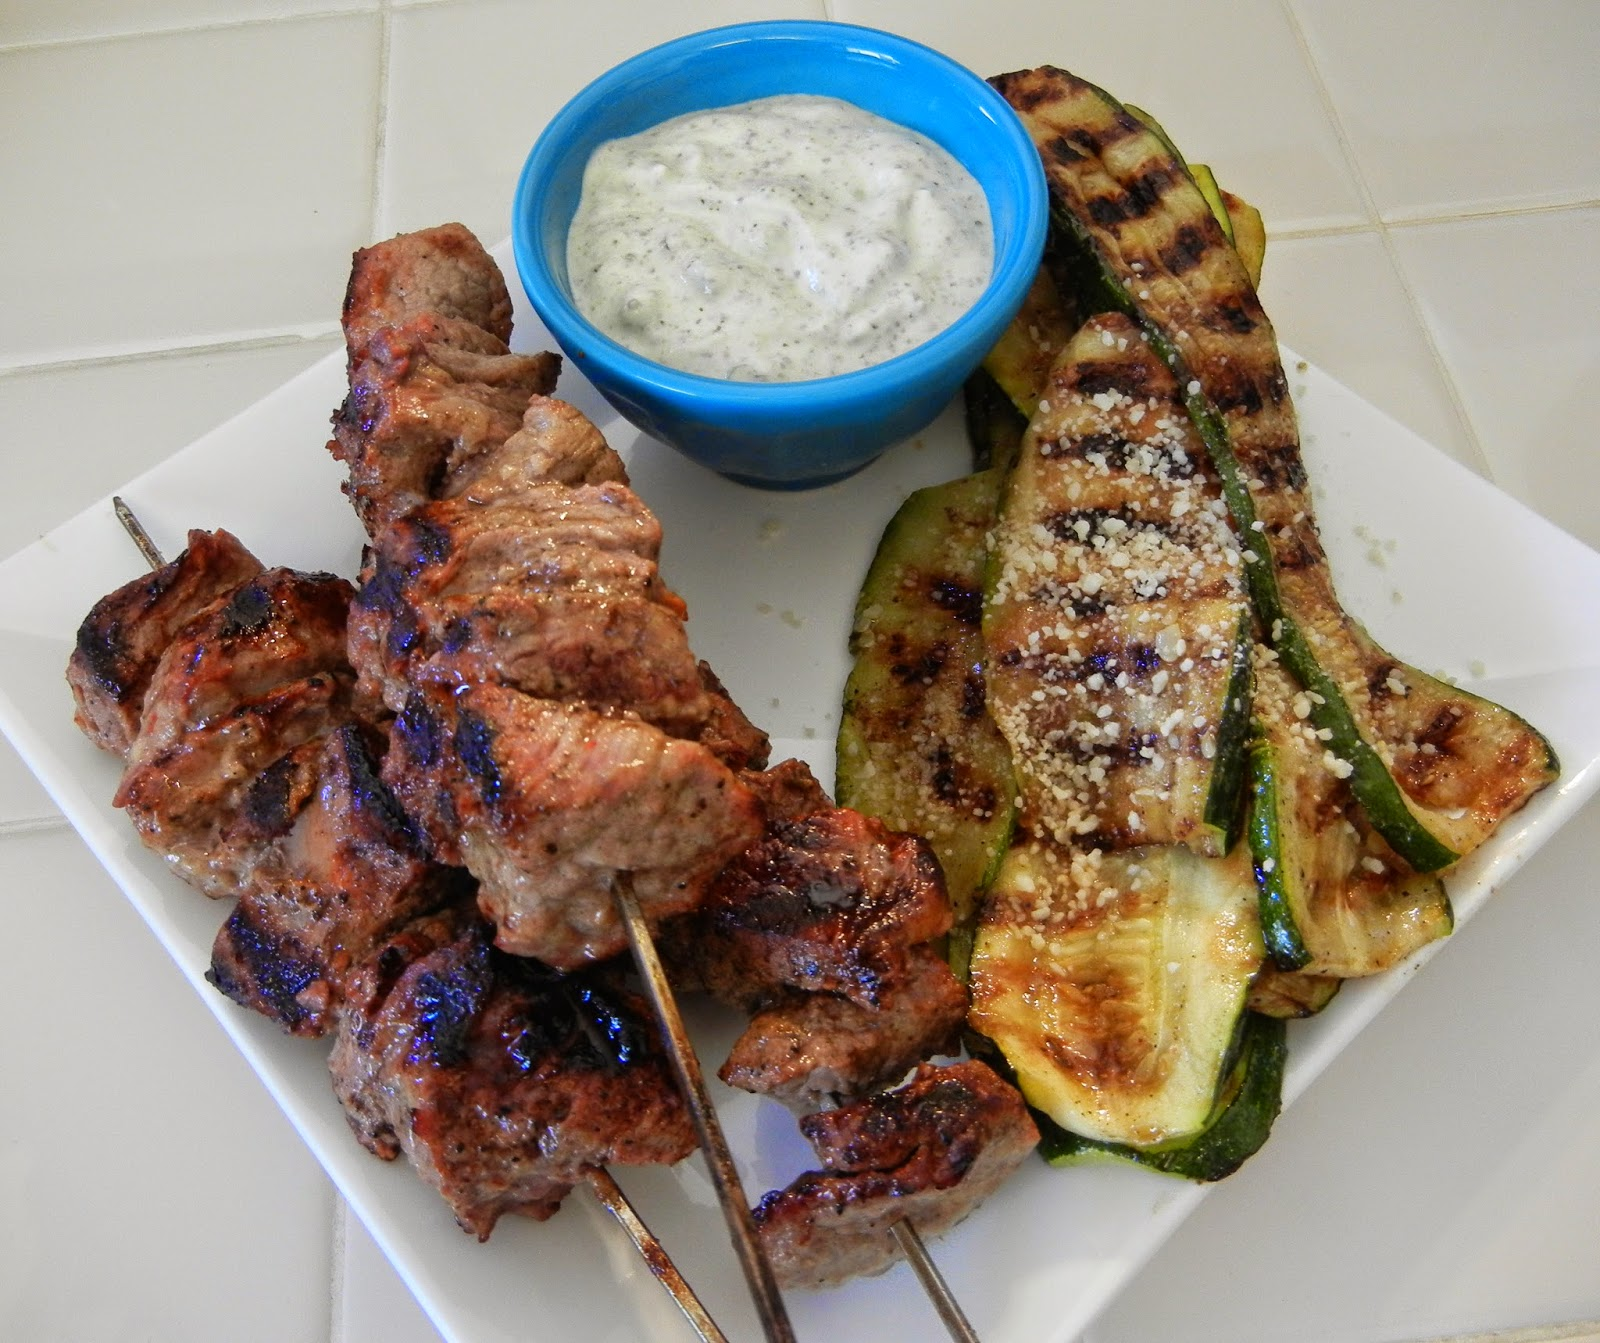 Beef+Kabobs+Grilled+Zucchini+Greek+Yogurt+Dip+Eggface Weight Loss Recipes Post Weight Loss Surgery Menus: A day in my pouch